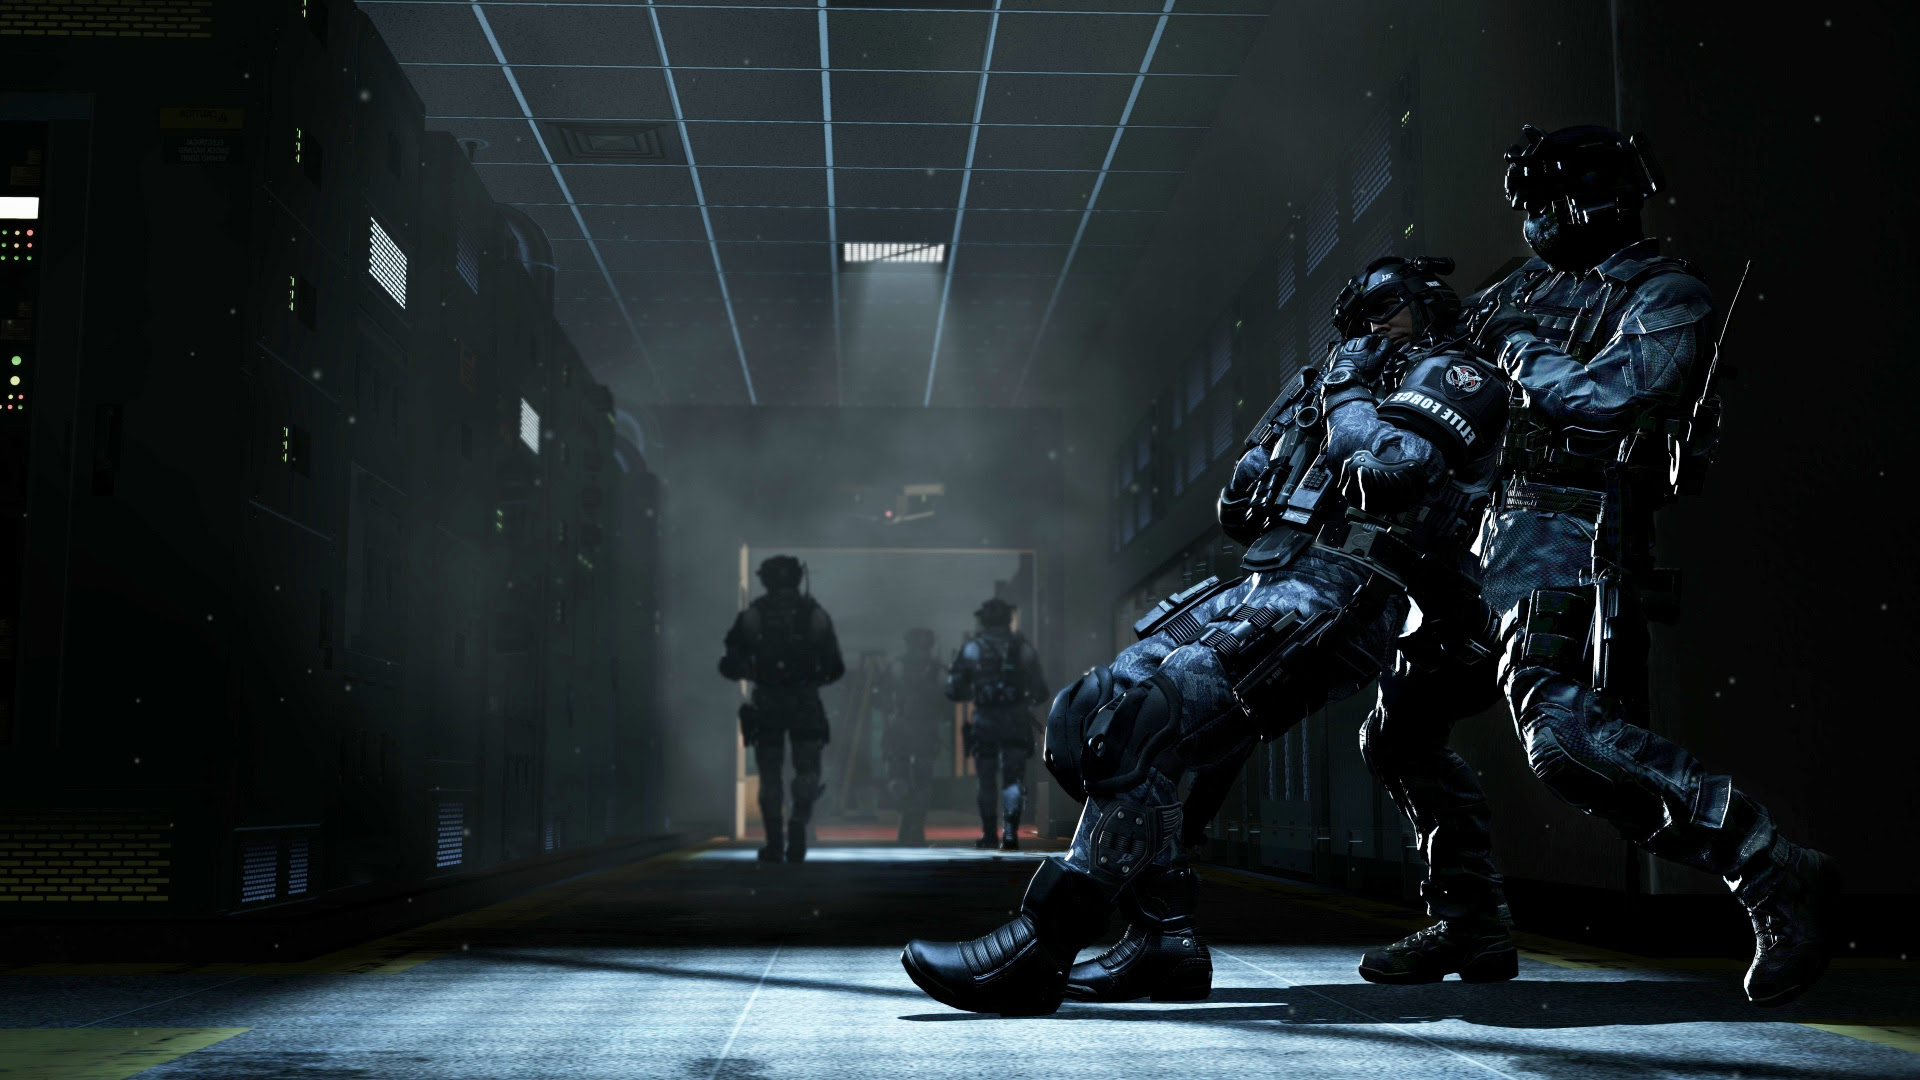 Download Call Of Duty Vs Halo Wallpaper